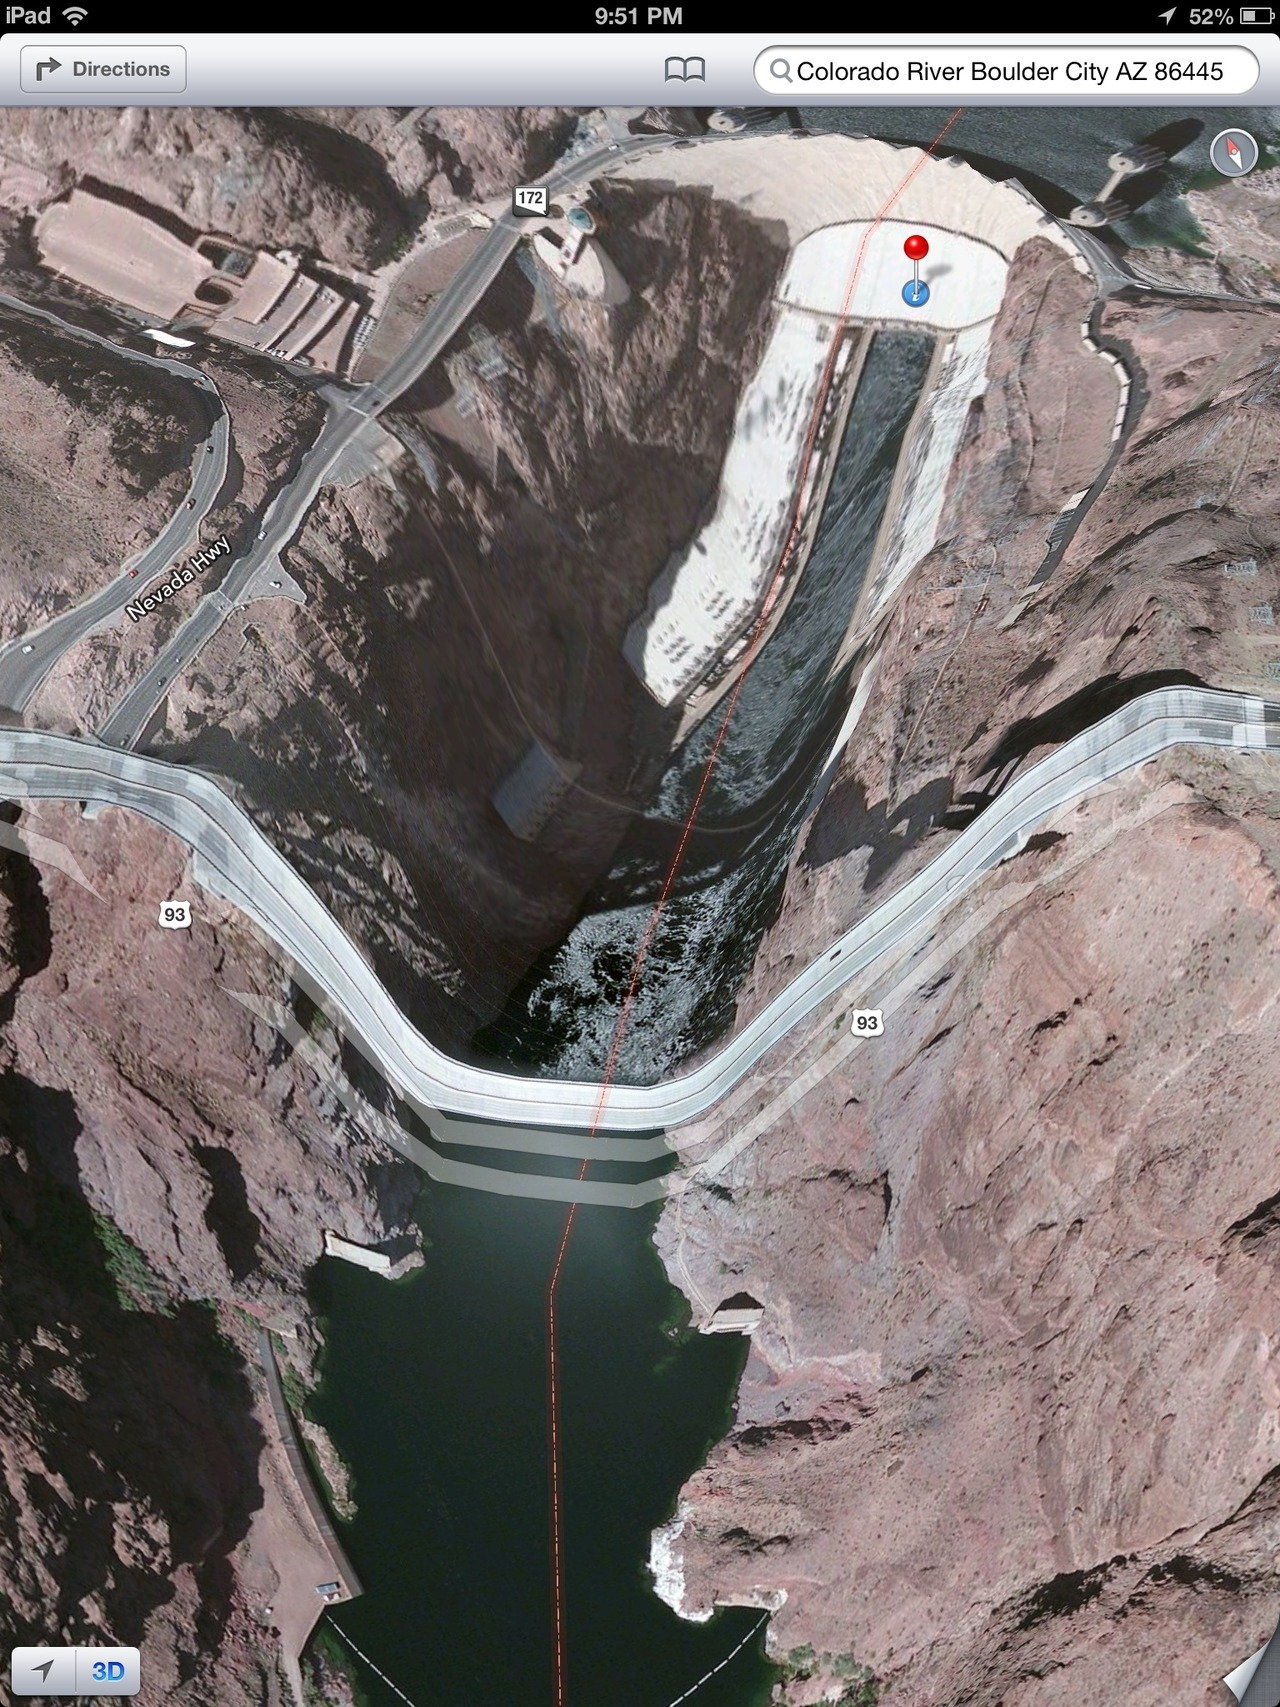 The Colorado River Bridge at Hoover Dam takes a terrifying 900 foot drop into Black Canyon.